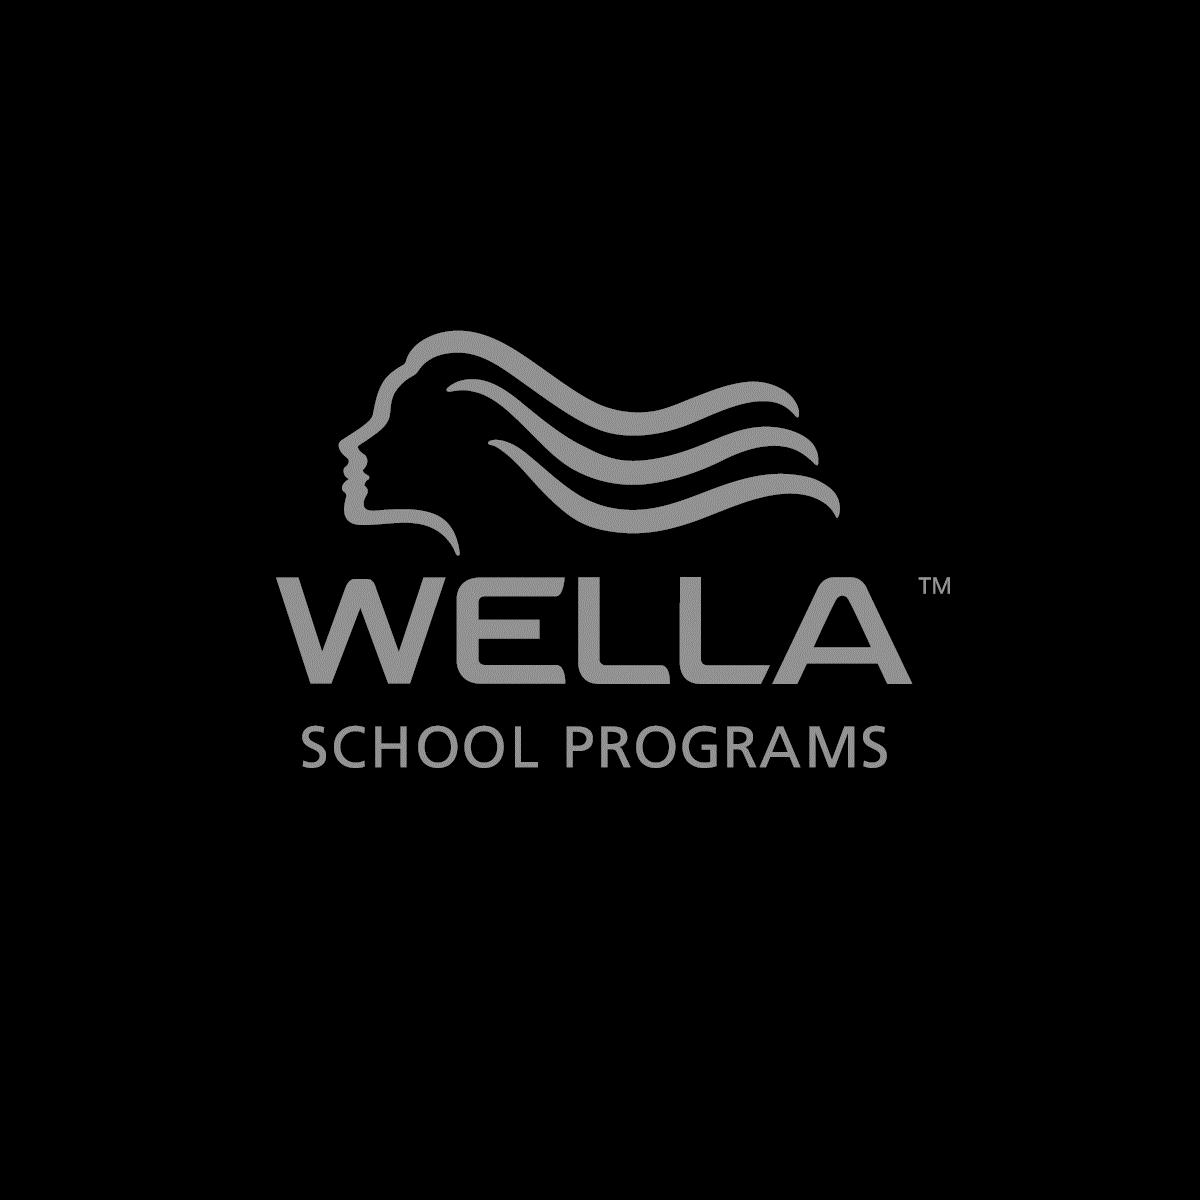 Image for Training: Wella School Program: Winter Train the trainer Session 3